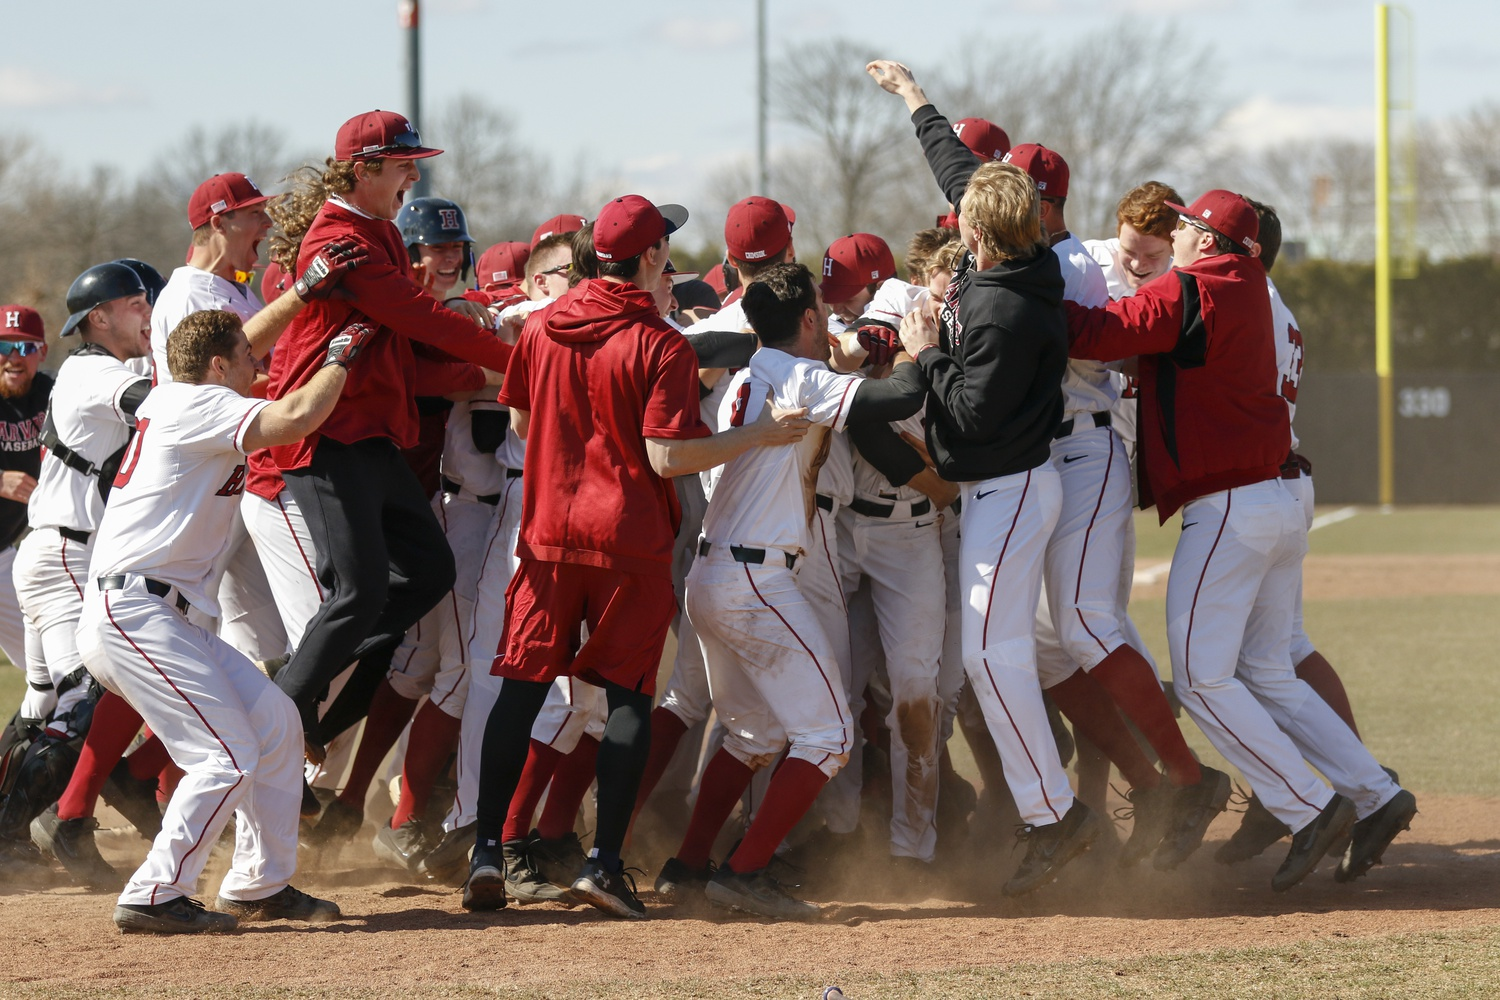 The team celebrates after a nine-run, ninth inning to take the first game against Yale.